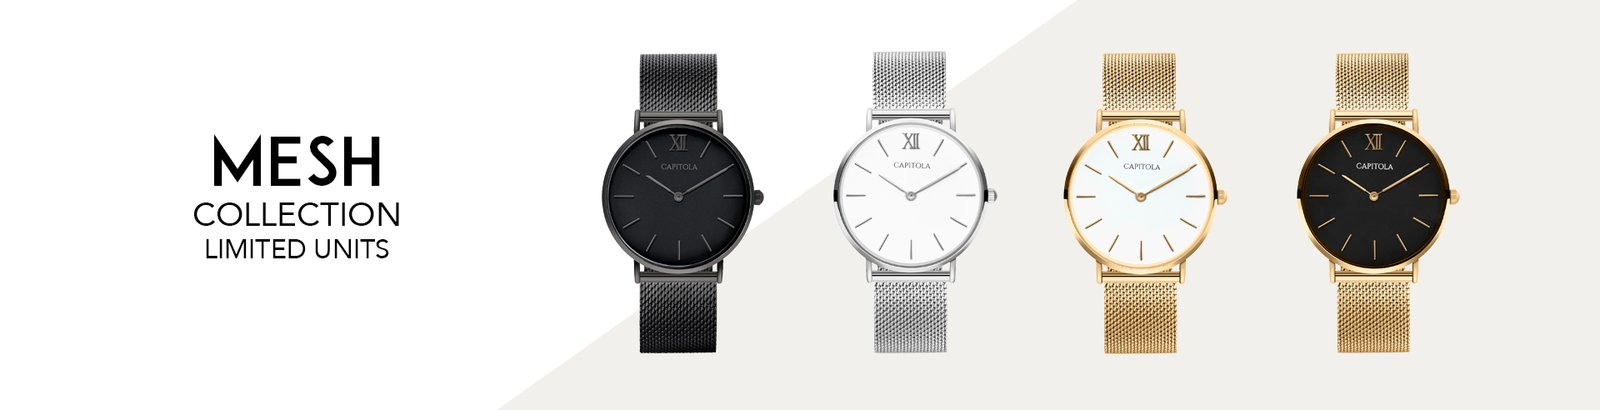 Capitola watches Horloge mesh